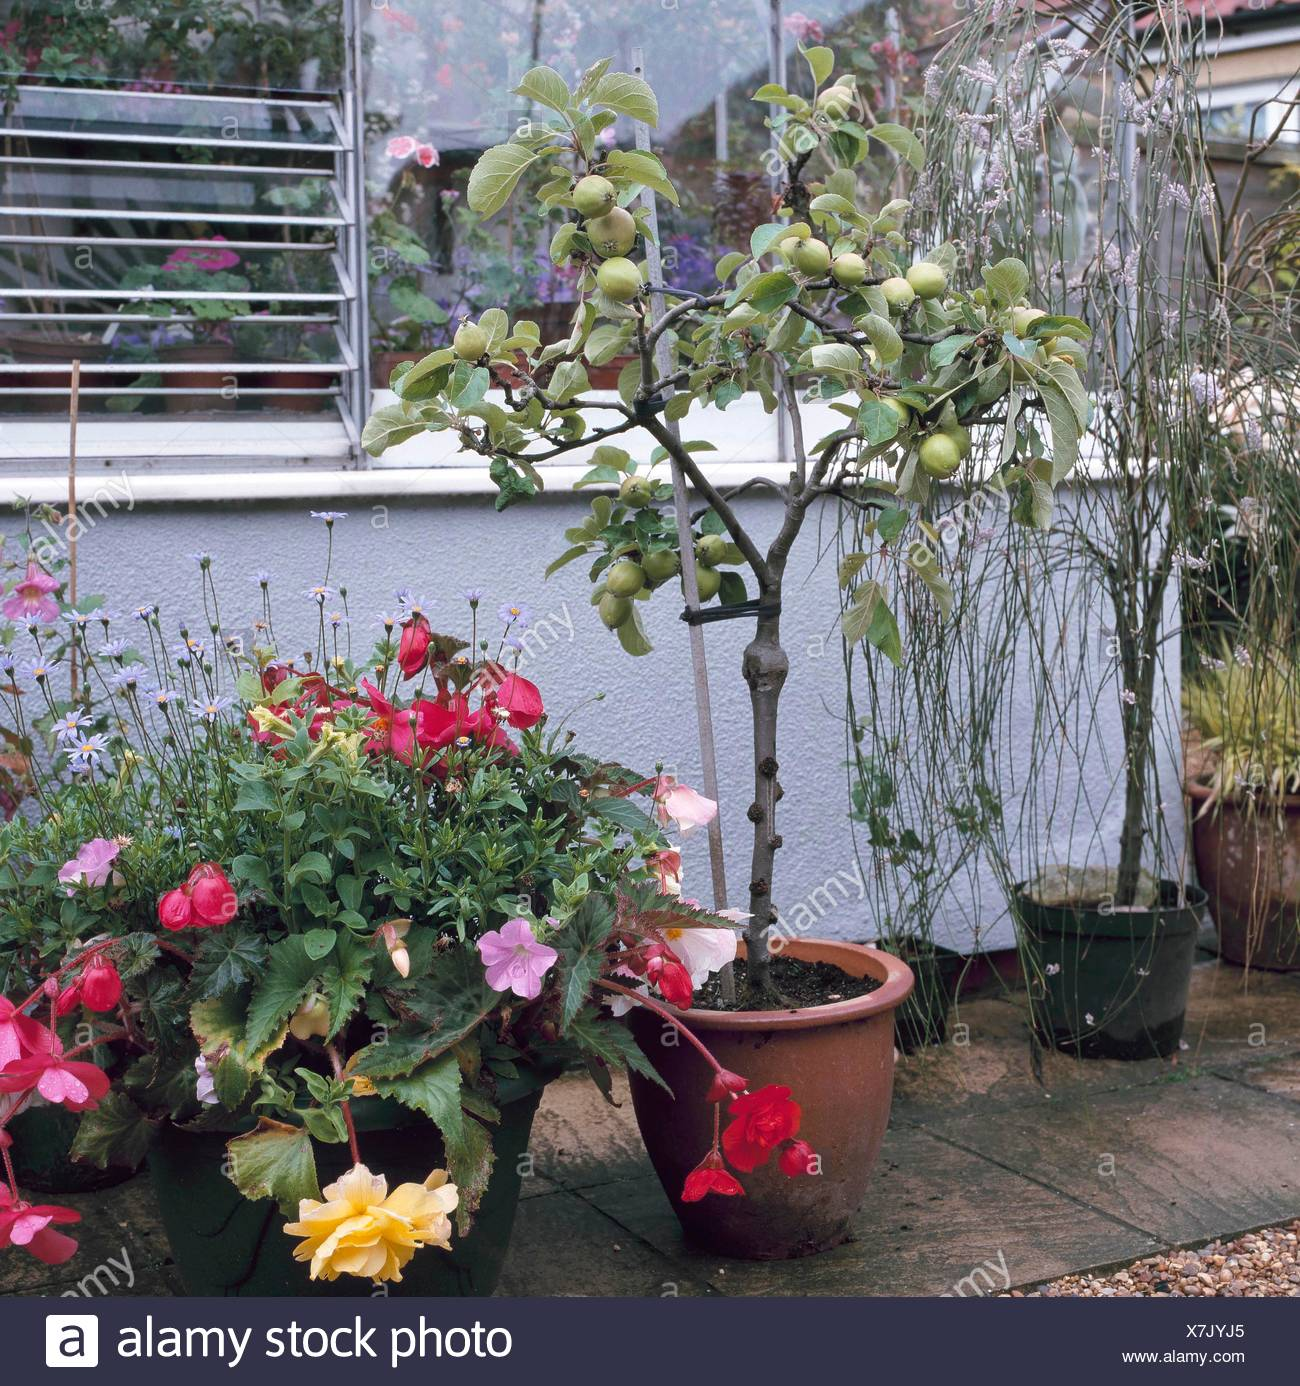 Container Fruit Planted With An Apple Tree Ctr083991 Stock Photo Alamy